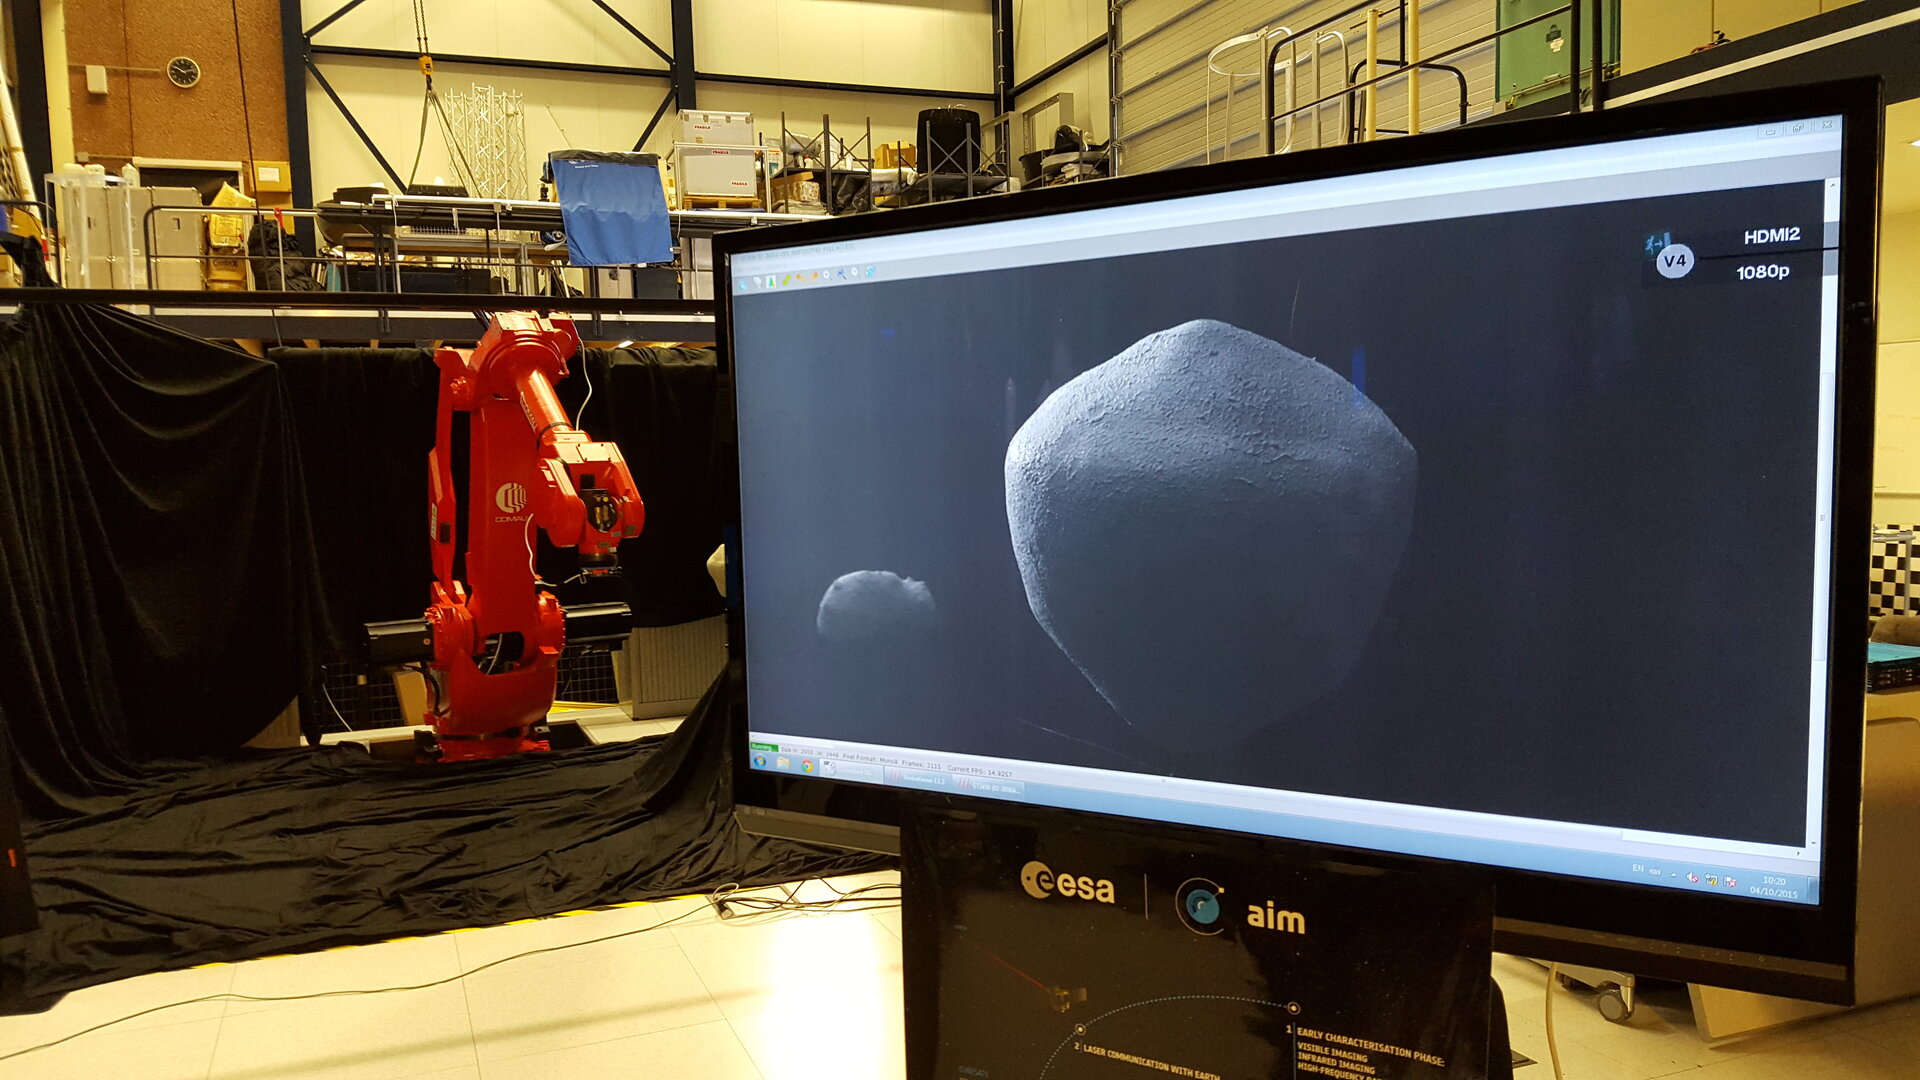 Robotic arm testing AIM mission's camera